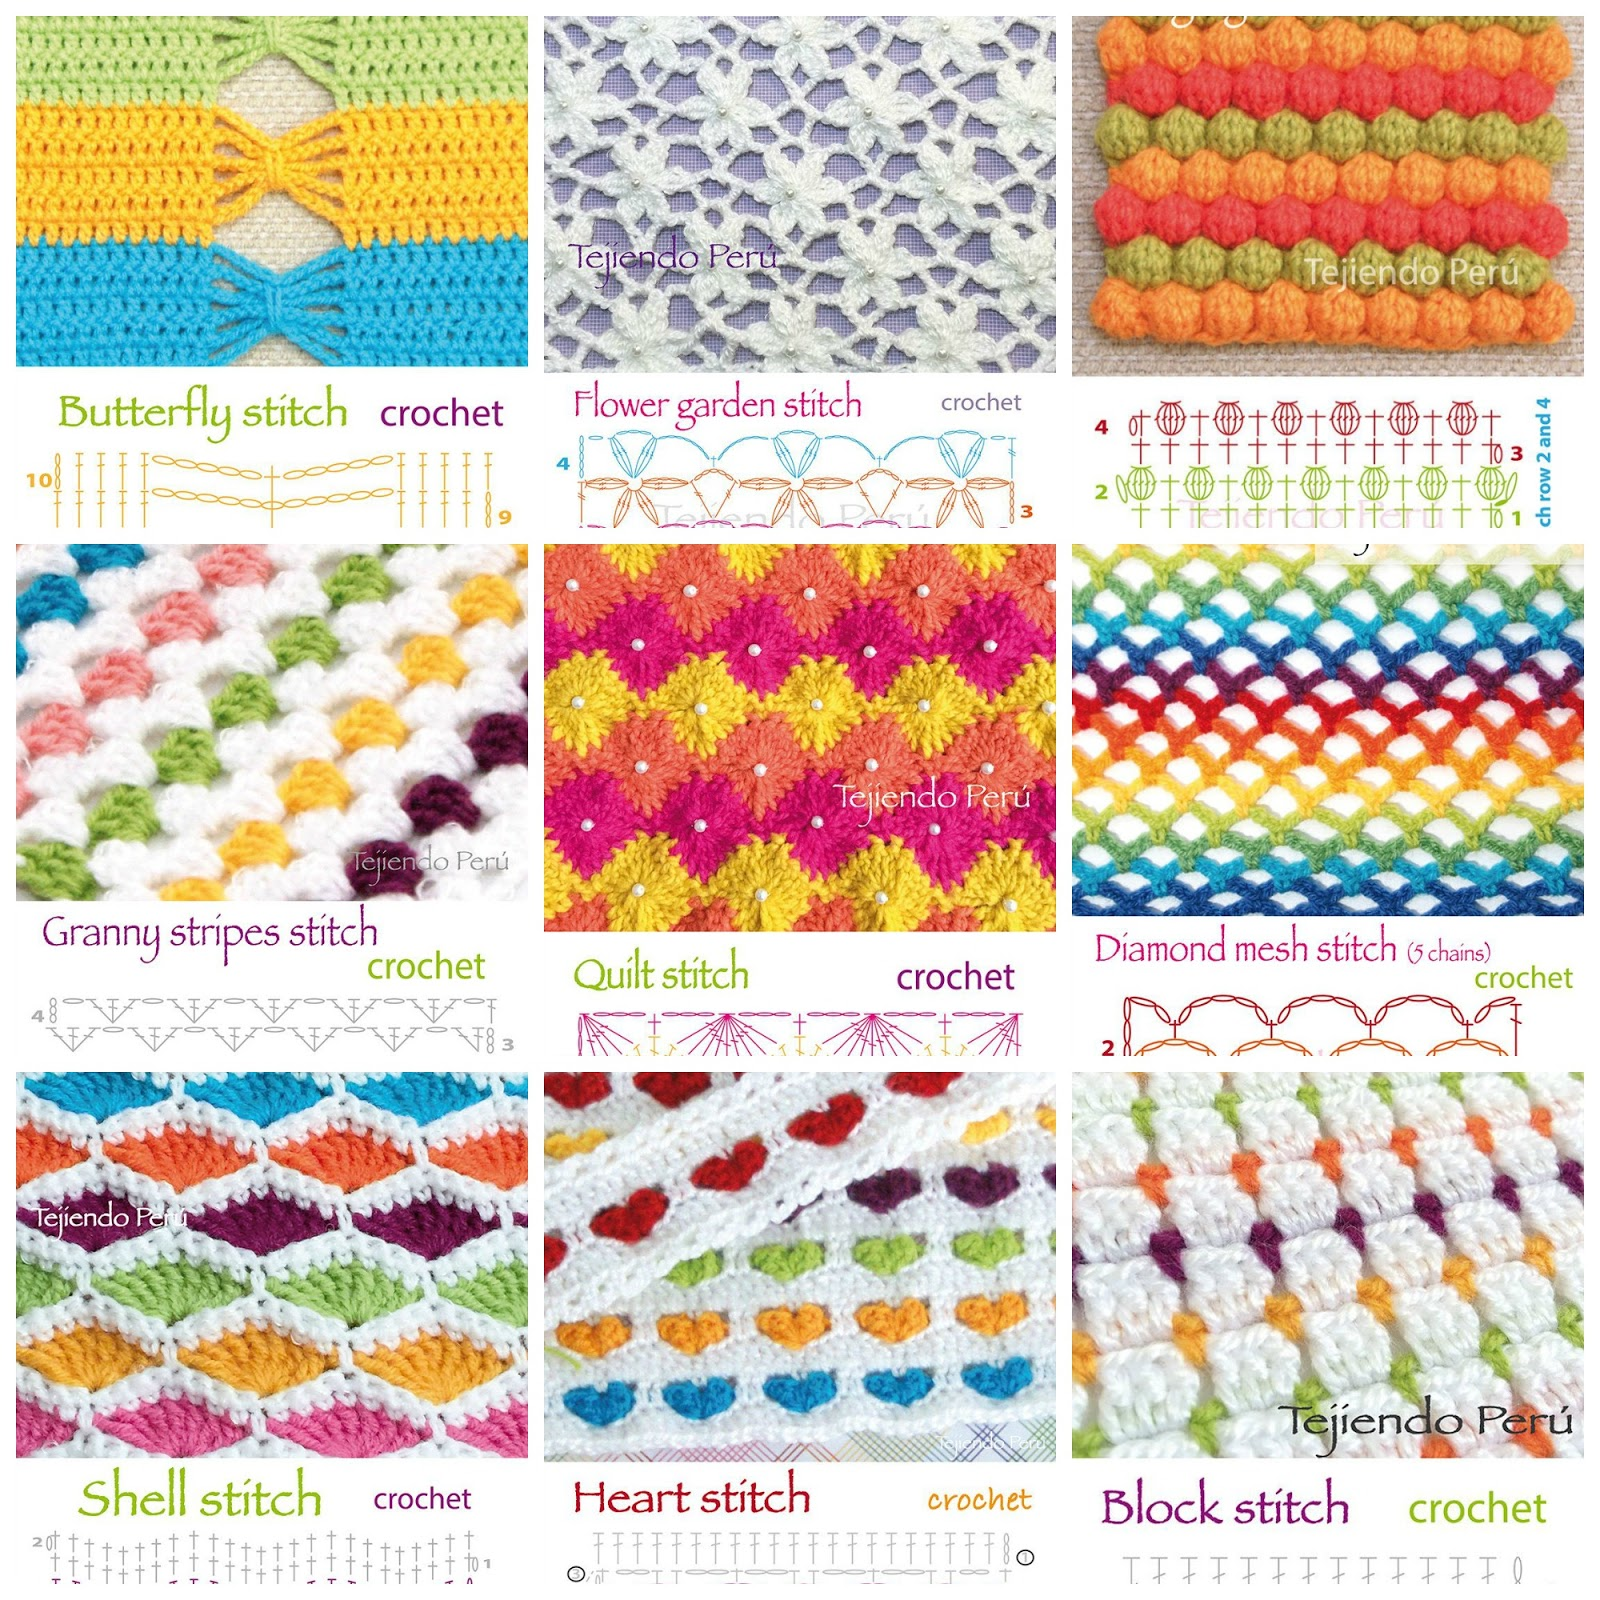 Crochet Stitches Australia : Crochet Stitches + Diagrams